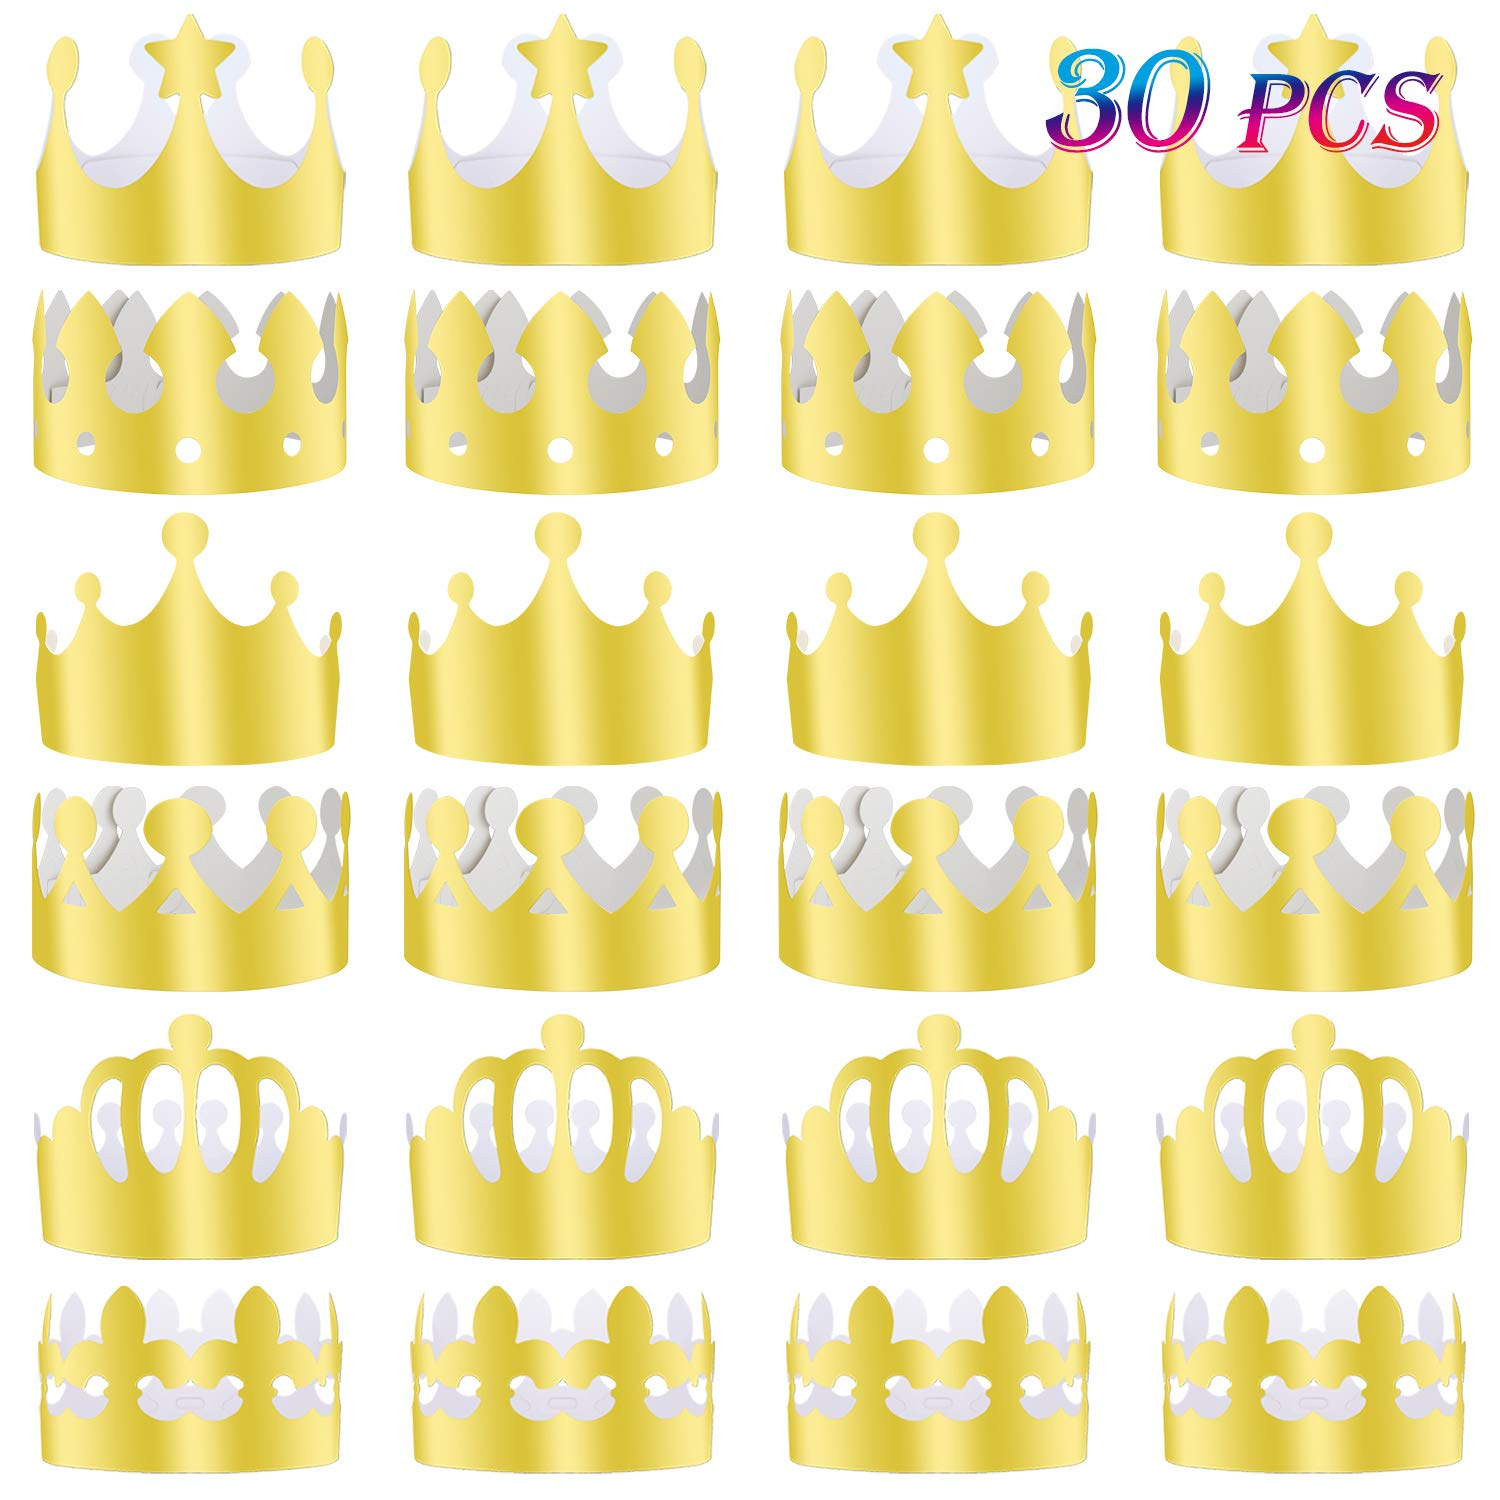 TUPARKA 30 Pcs Paper Crown Golden King Crowns Gold Foil Party Crown Hat Cap for Birthday Celebration Baby Shower Photo Props (6 Styles)